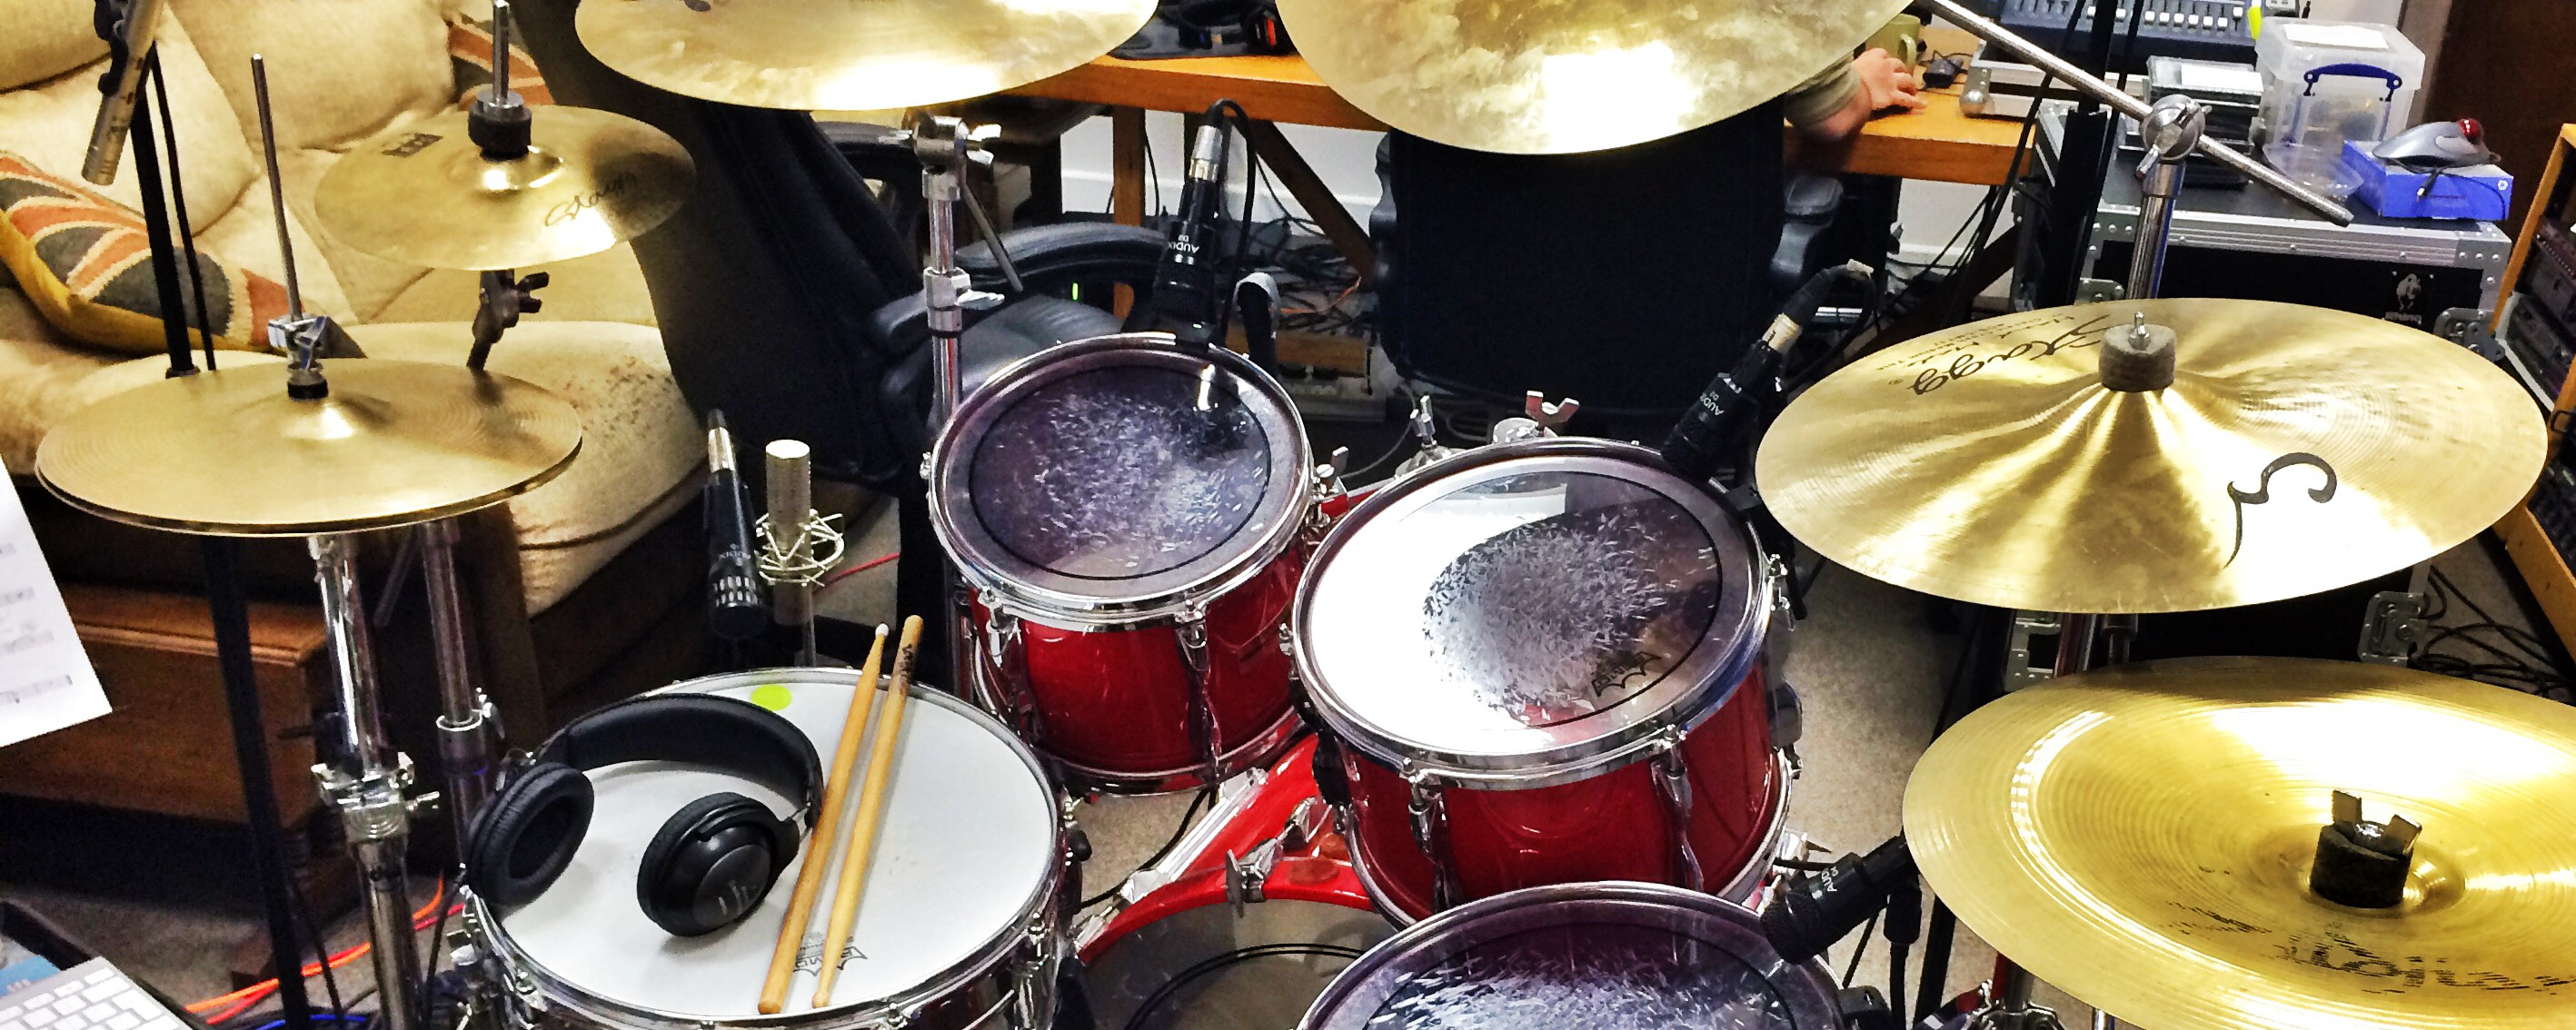 The Drums are nearly done – using a famous drumkit!